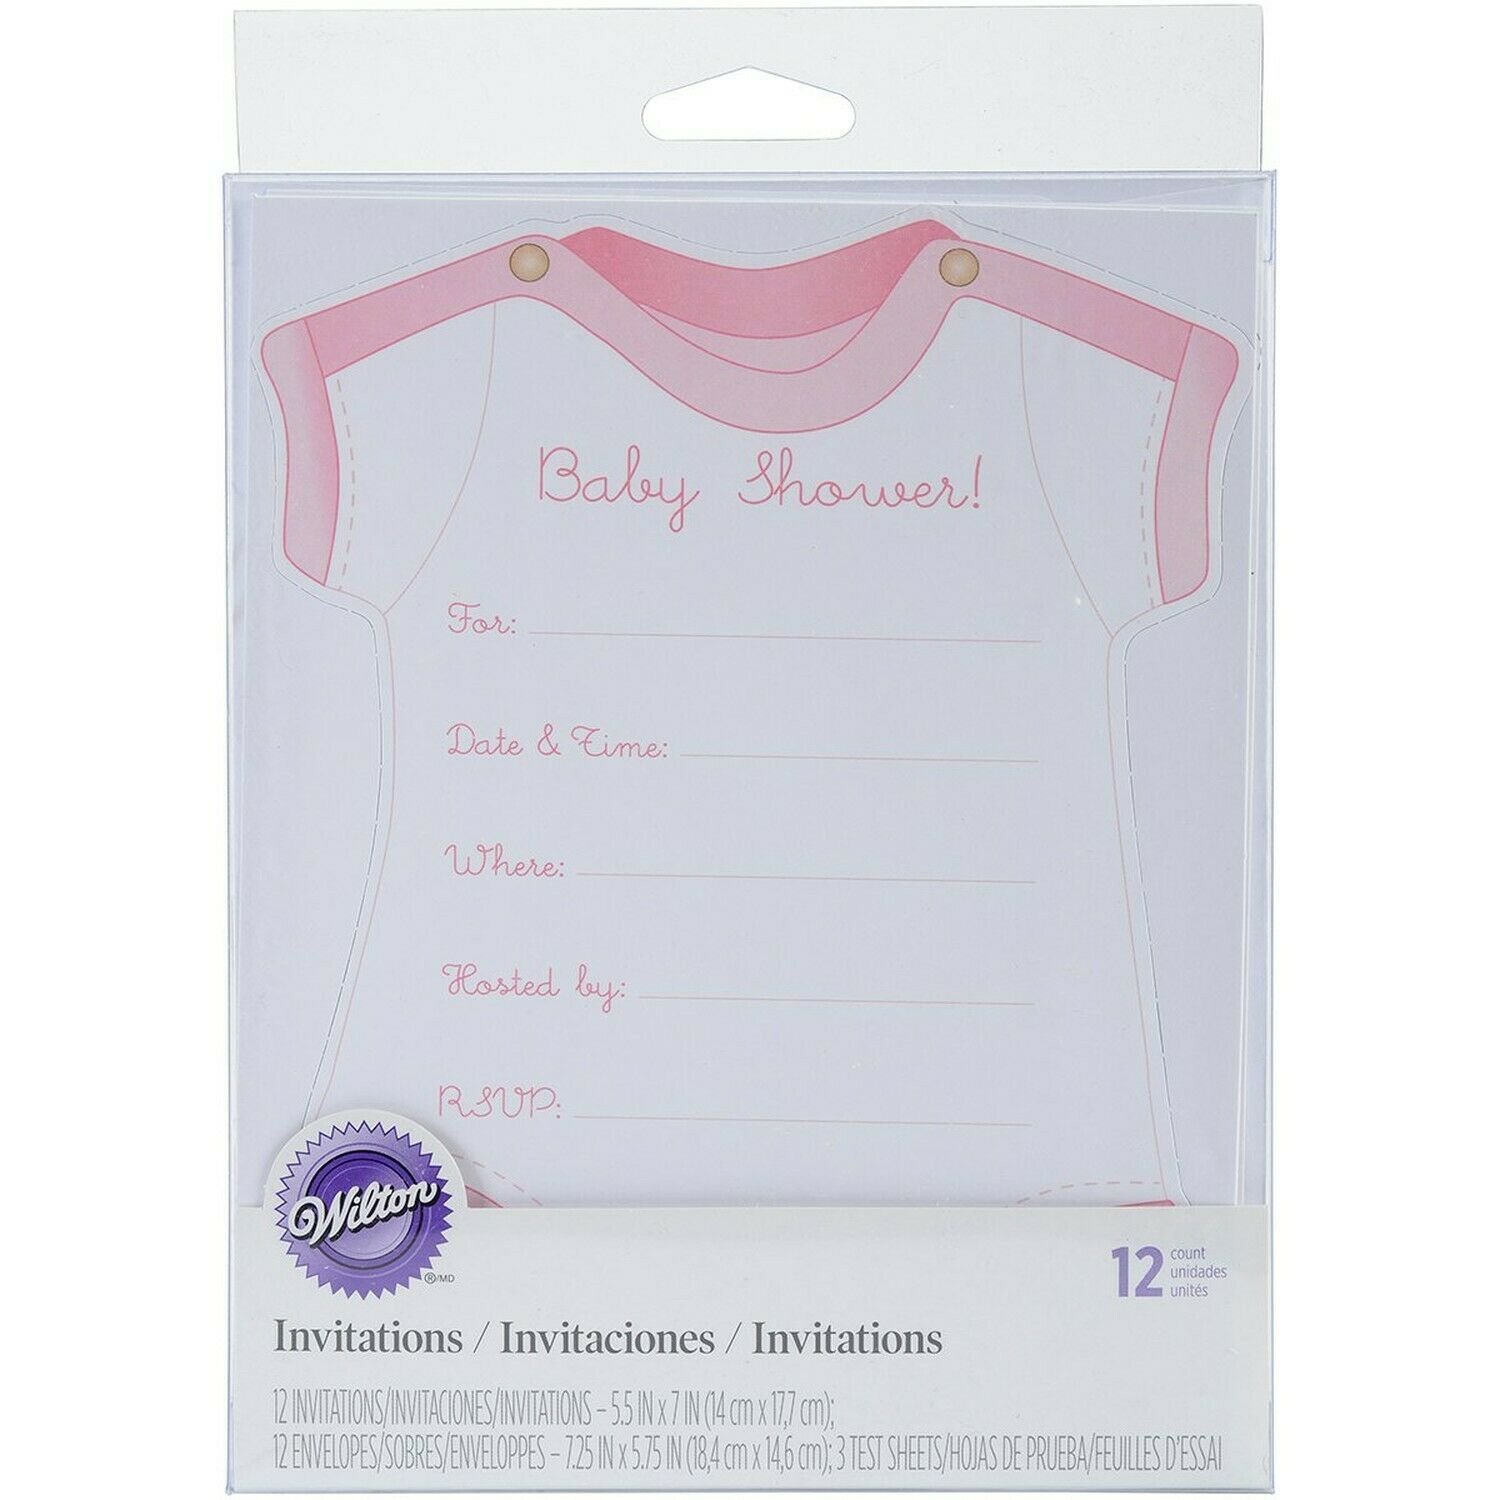 Wilton Pink Girl Fill-In Baby Shower Invitations, 12pc - $7.34